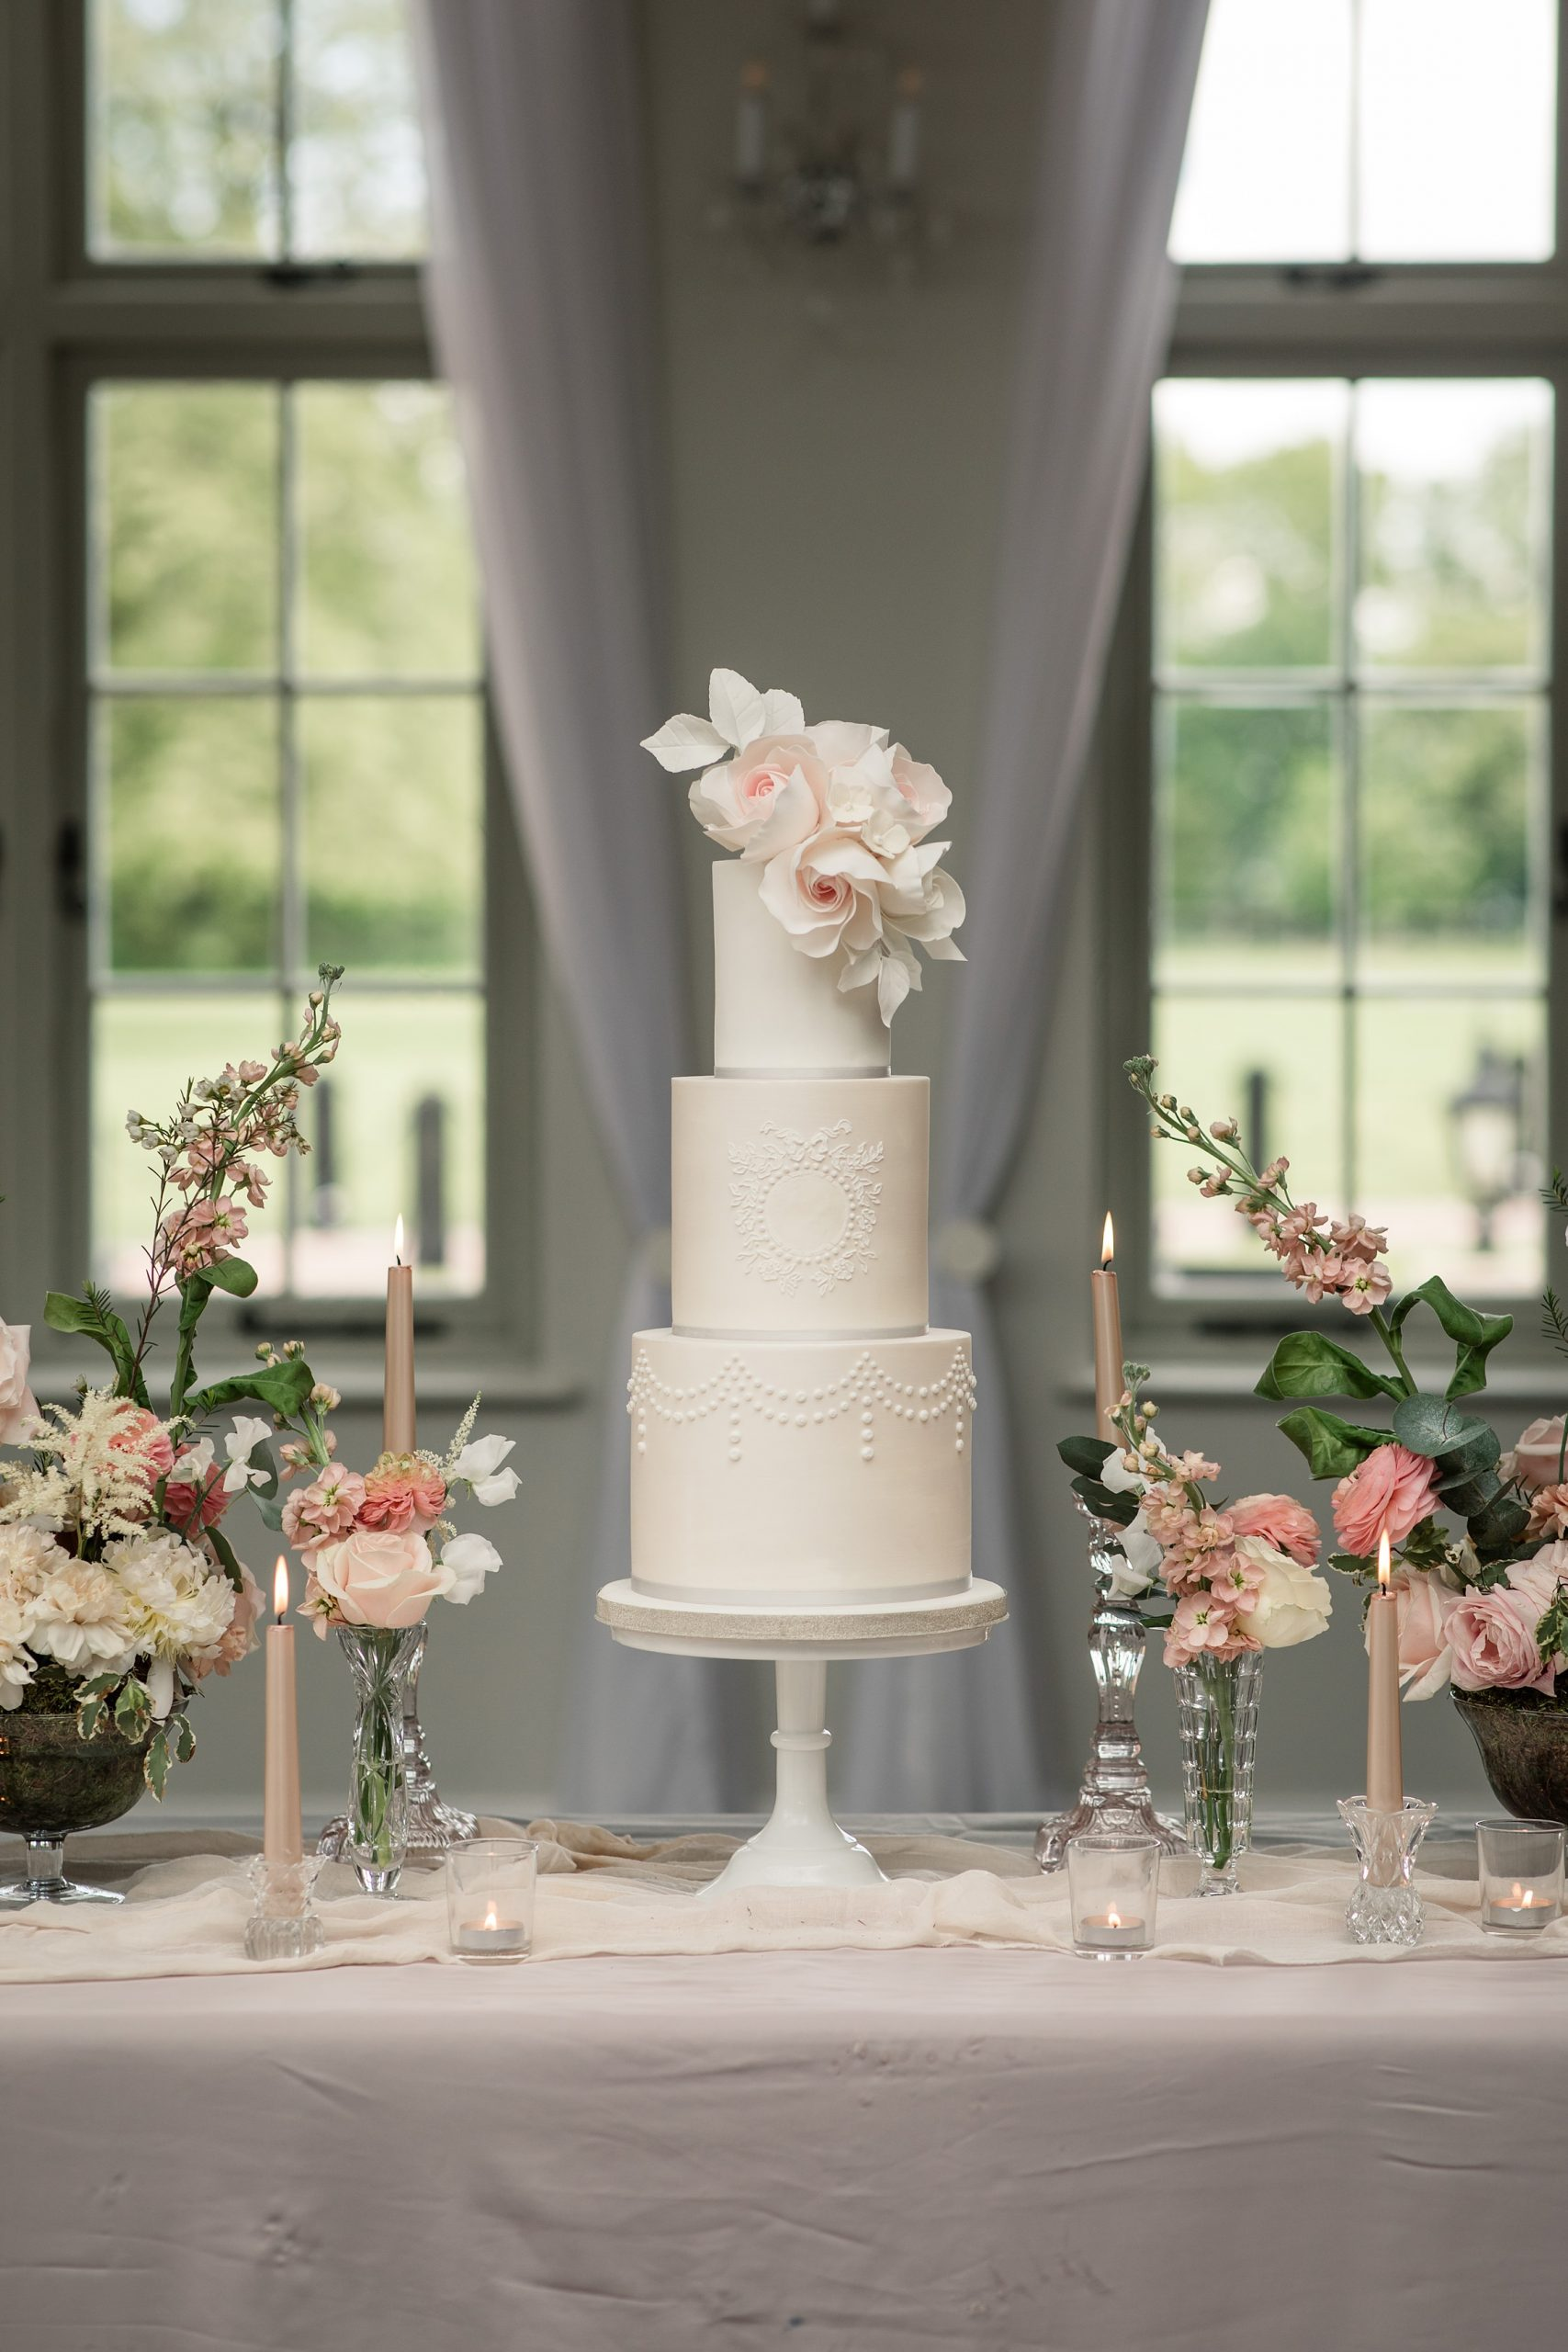 Luxury wedding cake by Meadowsweet Cakes at Offley Place, taken by Becky Harley Photography